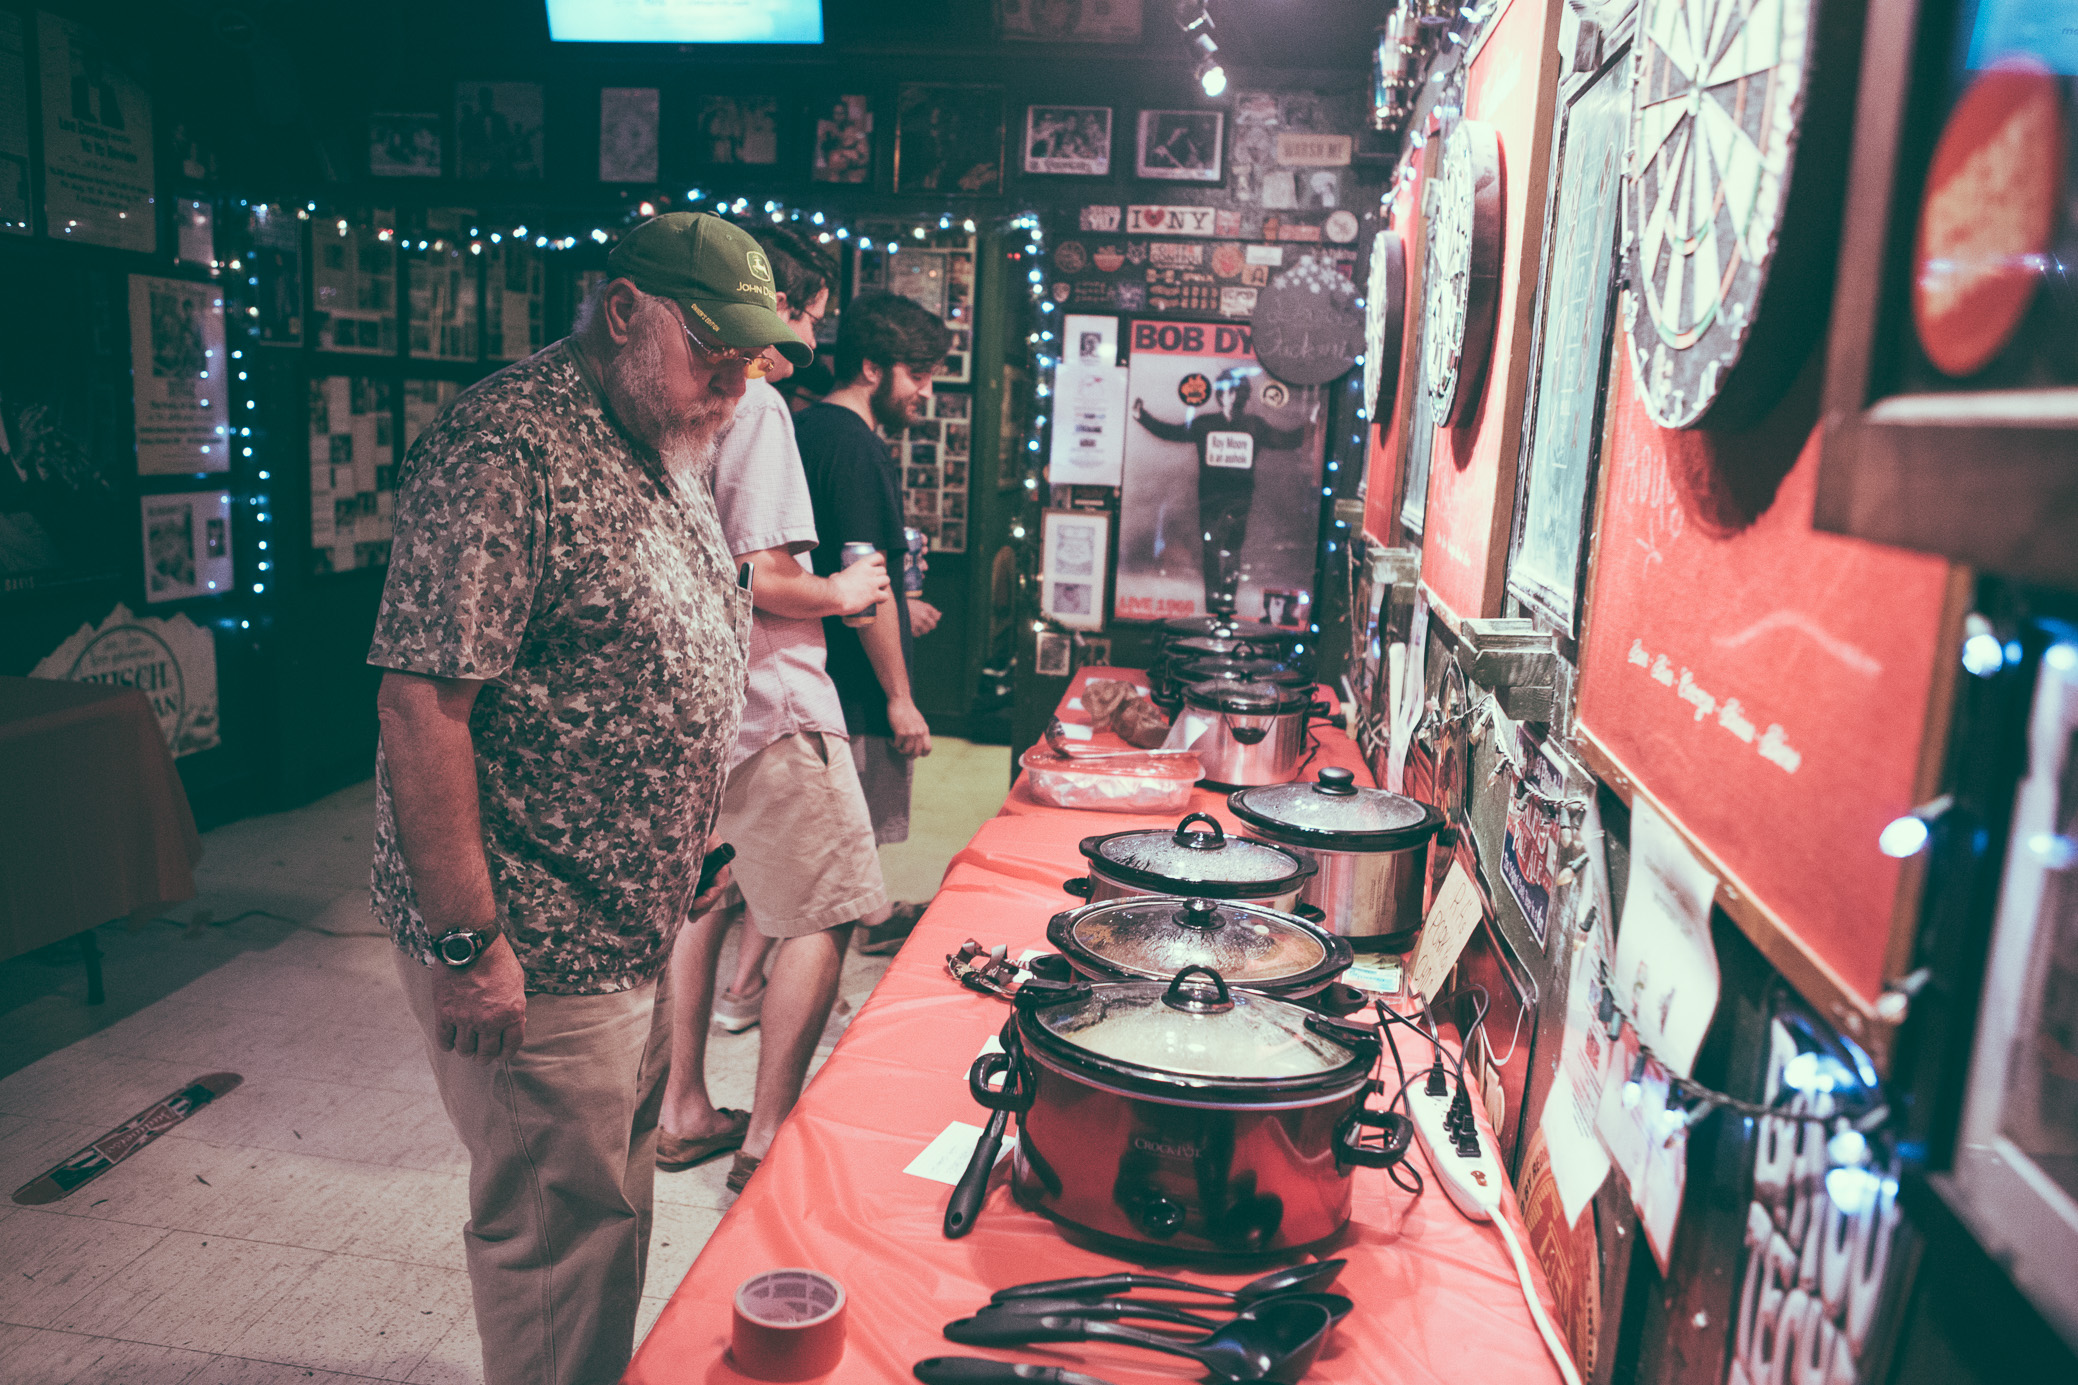 A scene from the Asses of Fire Chili Cook-Off at Egan's Bar in Tuscaloosa, Alabama on February 17th, 2018. (Photo by David A. Smith/DSmithScenes)